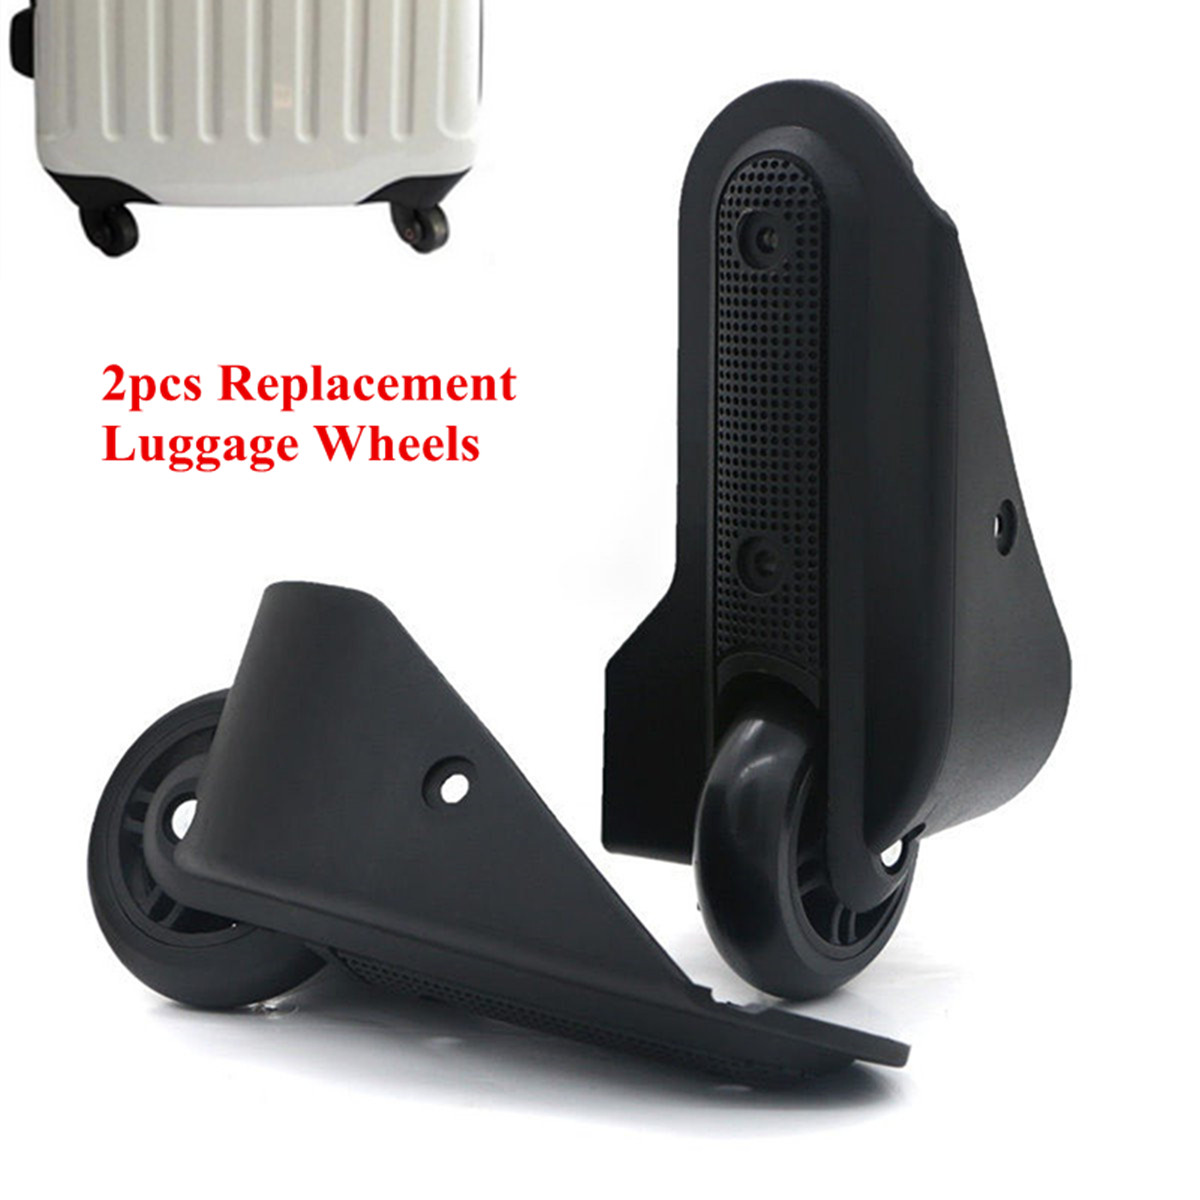 1 Pair Repair Trolley Wheels Replacement Luggage Wheels Travel Trolley Suitcase Wheels Travel Luggage Left & Right Wheels